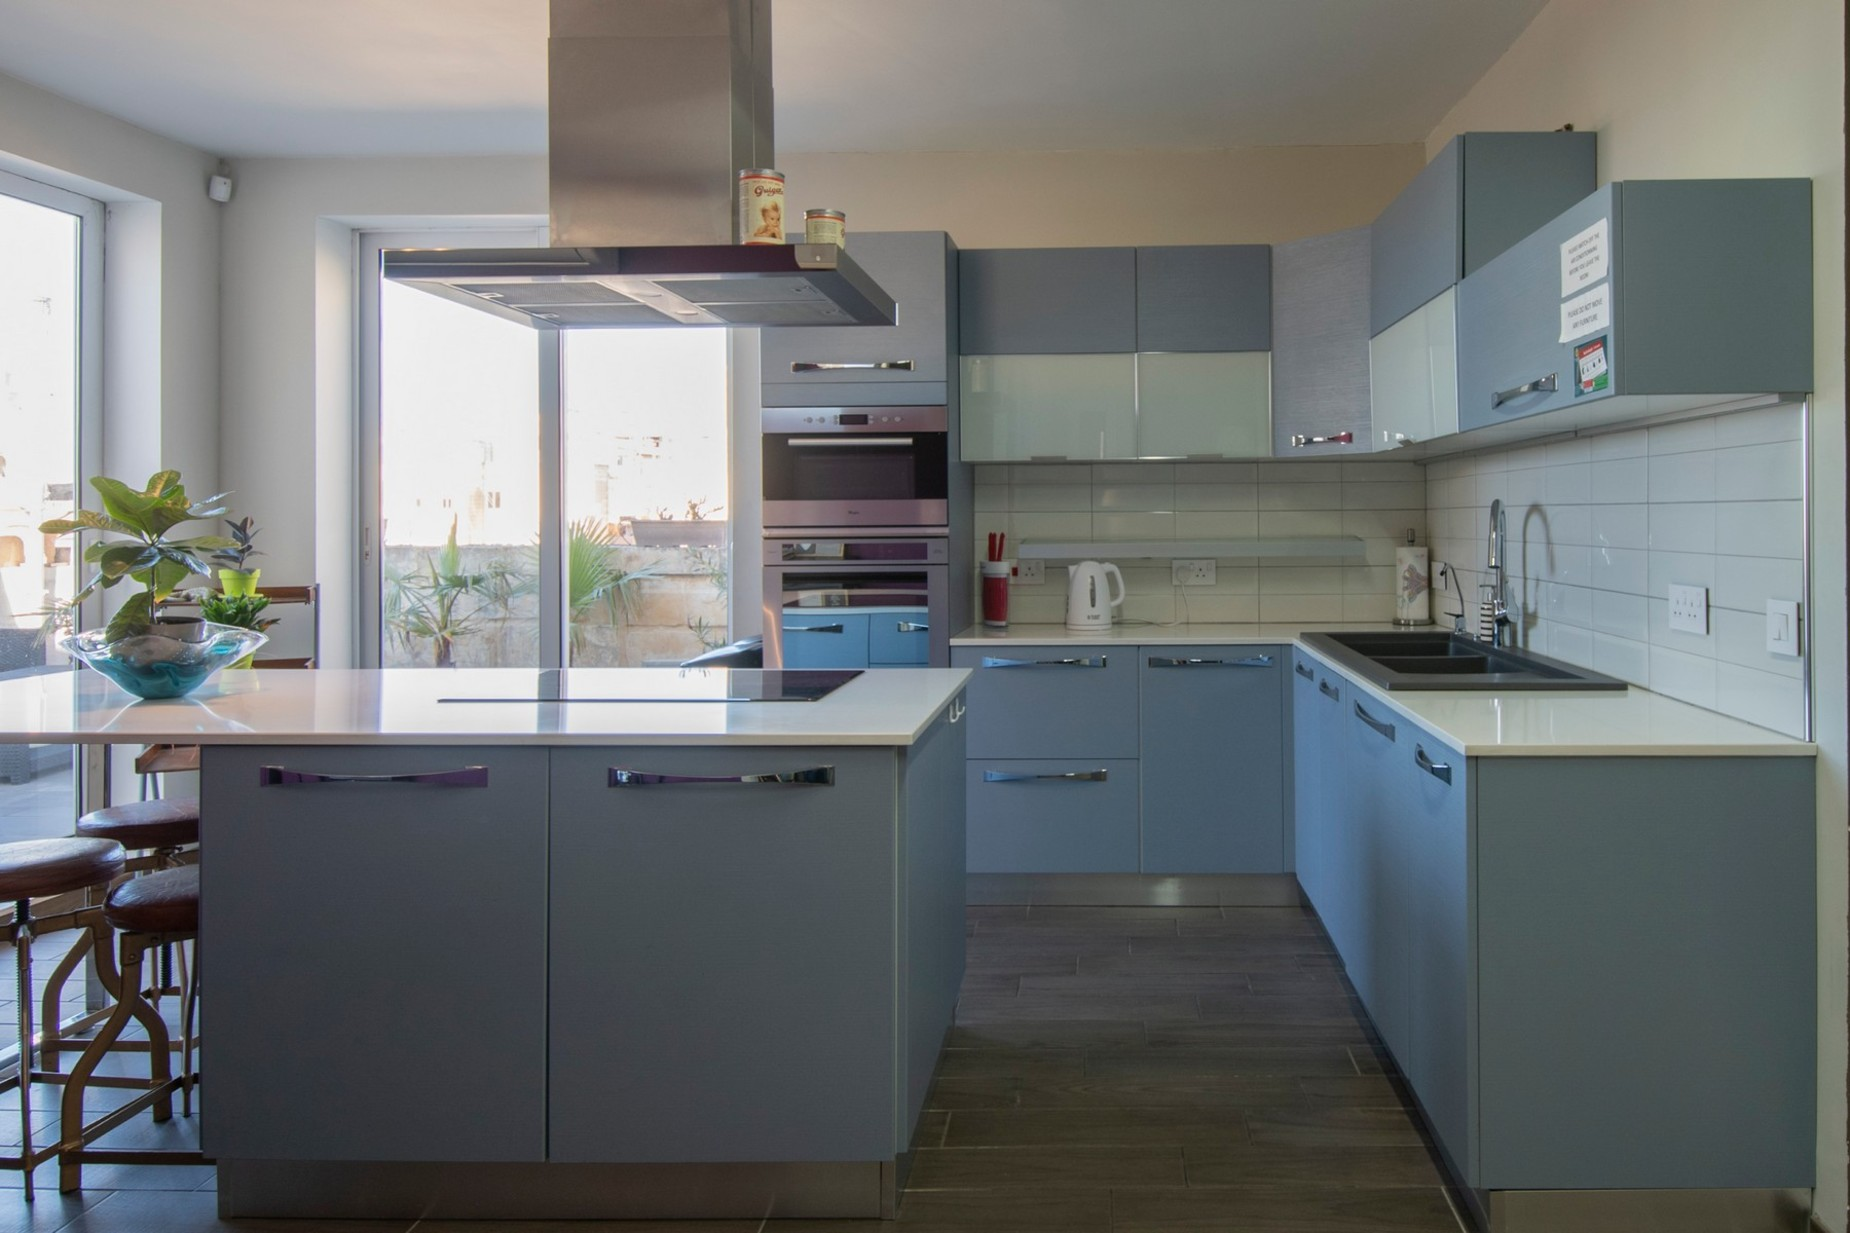 3 bed Town House For Sale in Cospicua, Cospicua - thumb 5